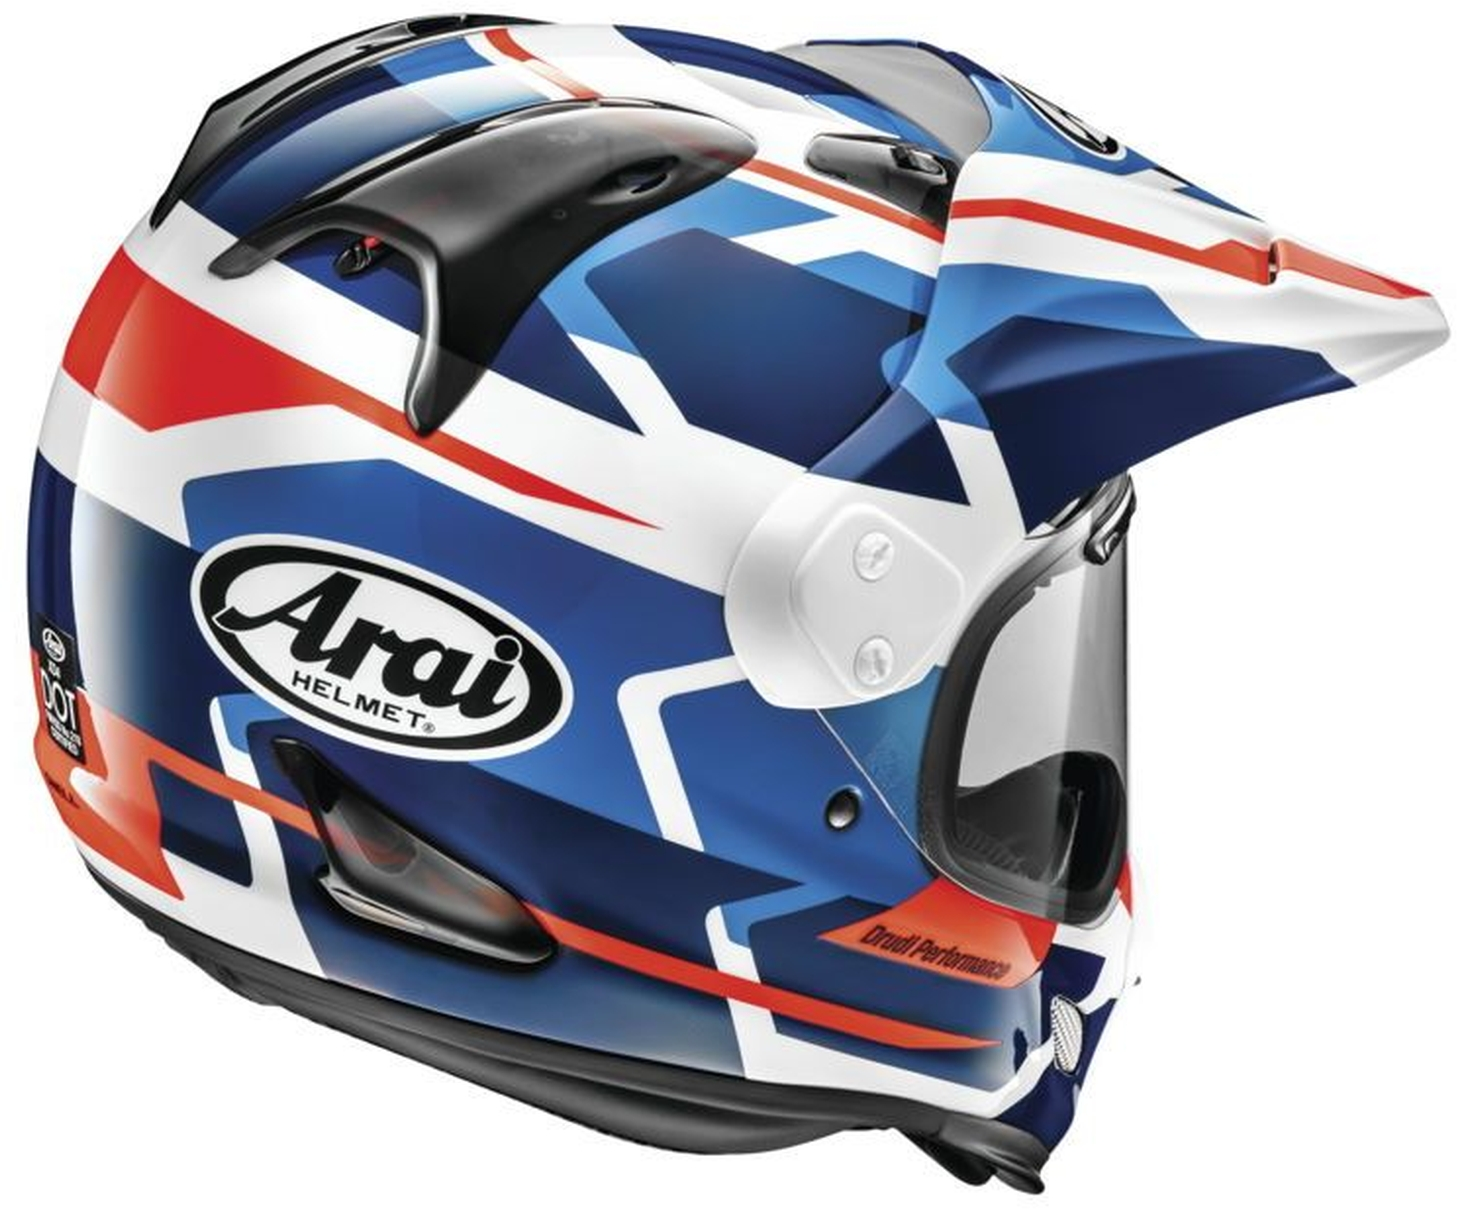 CASCO TOUR-X 4